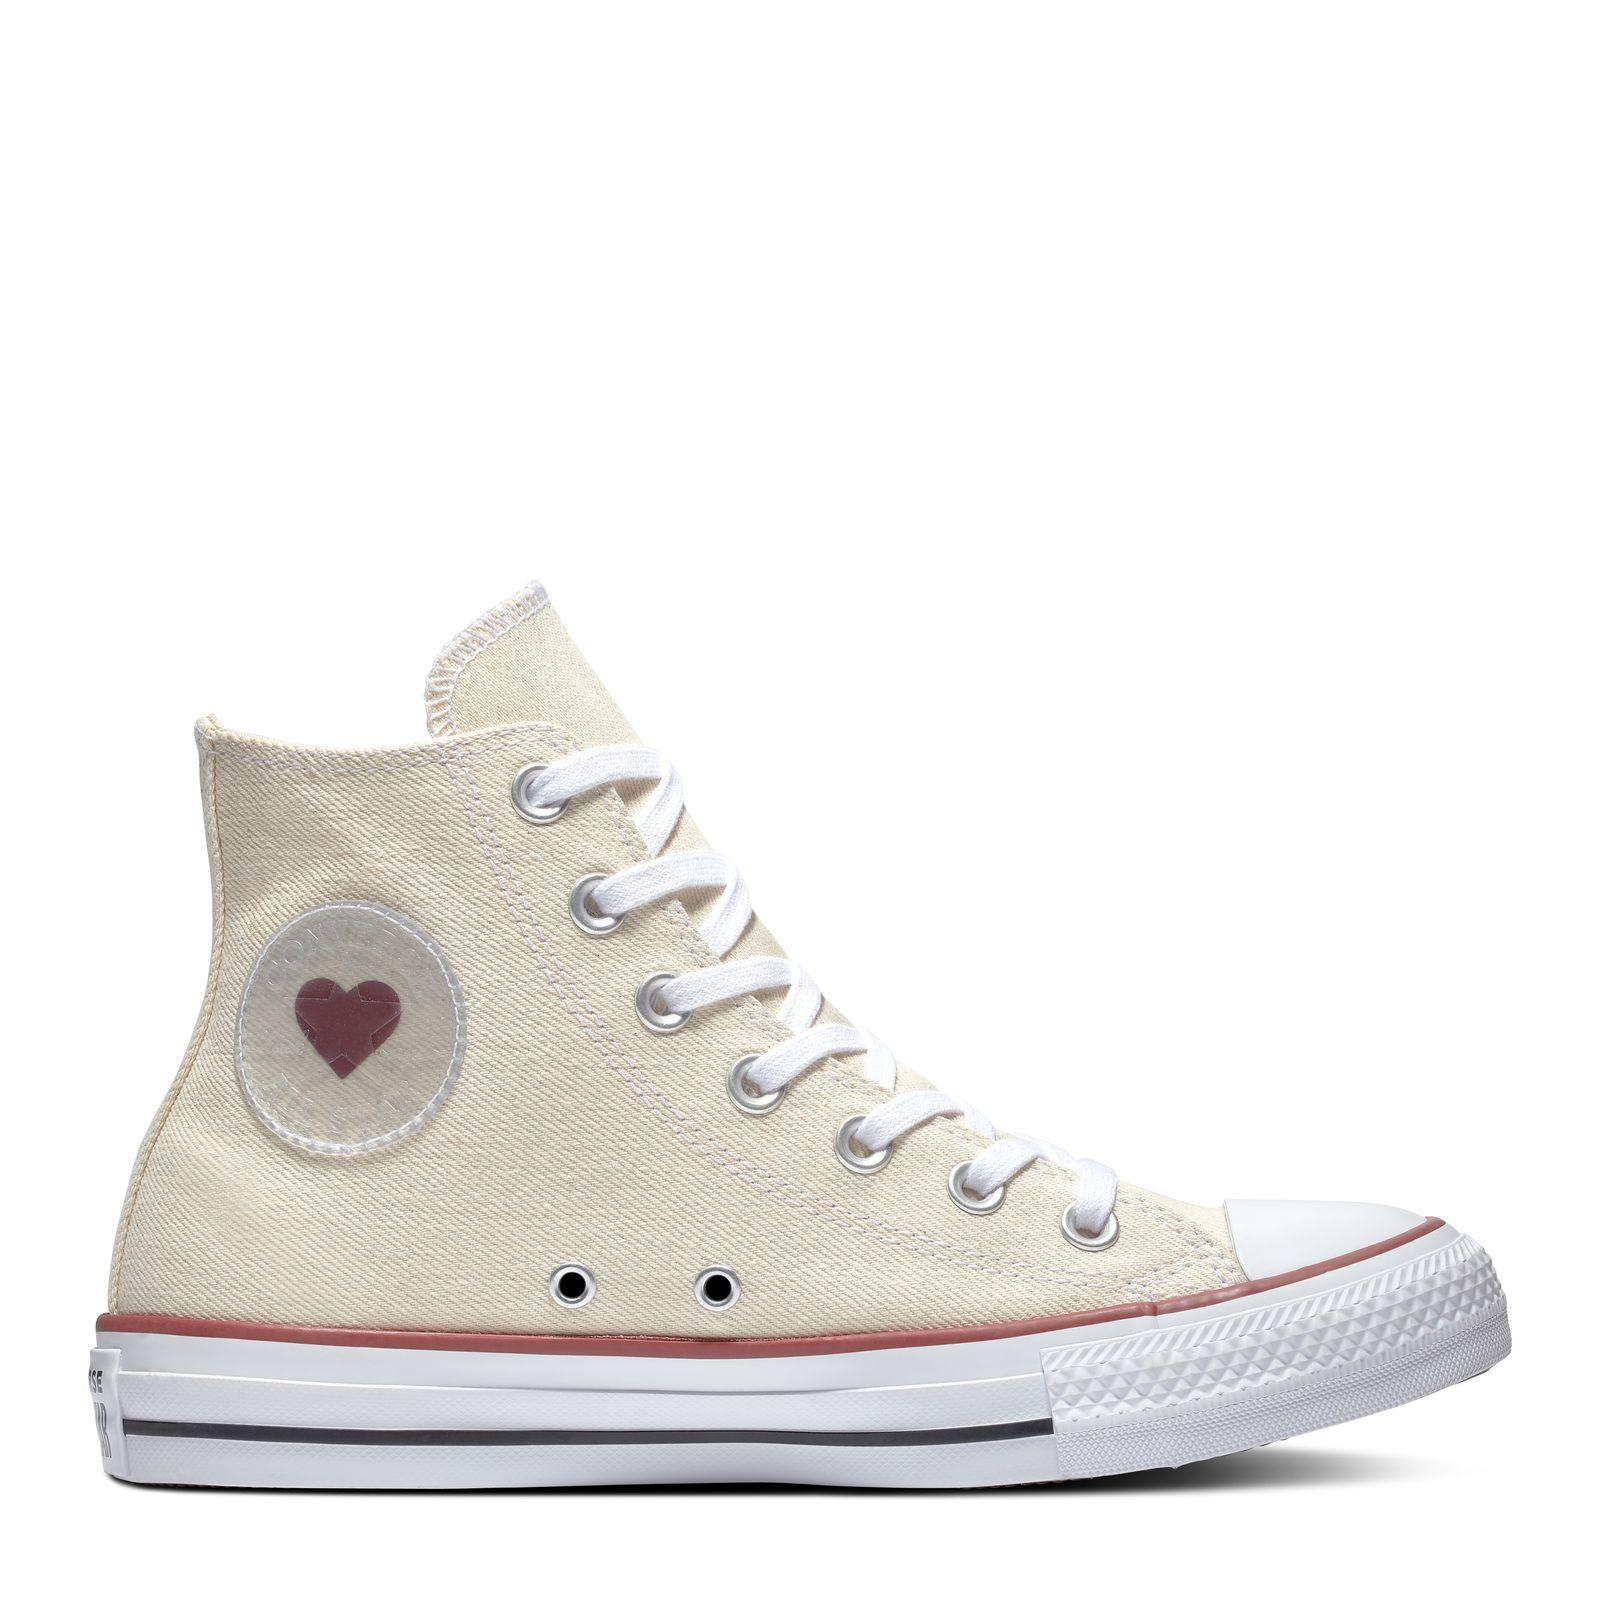 2661a01528cecb CONVERSE CHUCK TAYLOR ALL STAR DENIM LOVE HI - NATURAL WHITE GARNET -  163304C